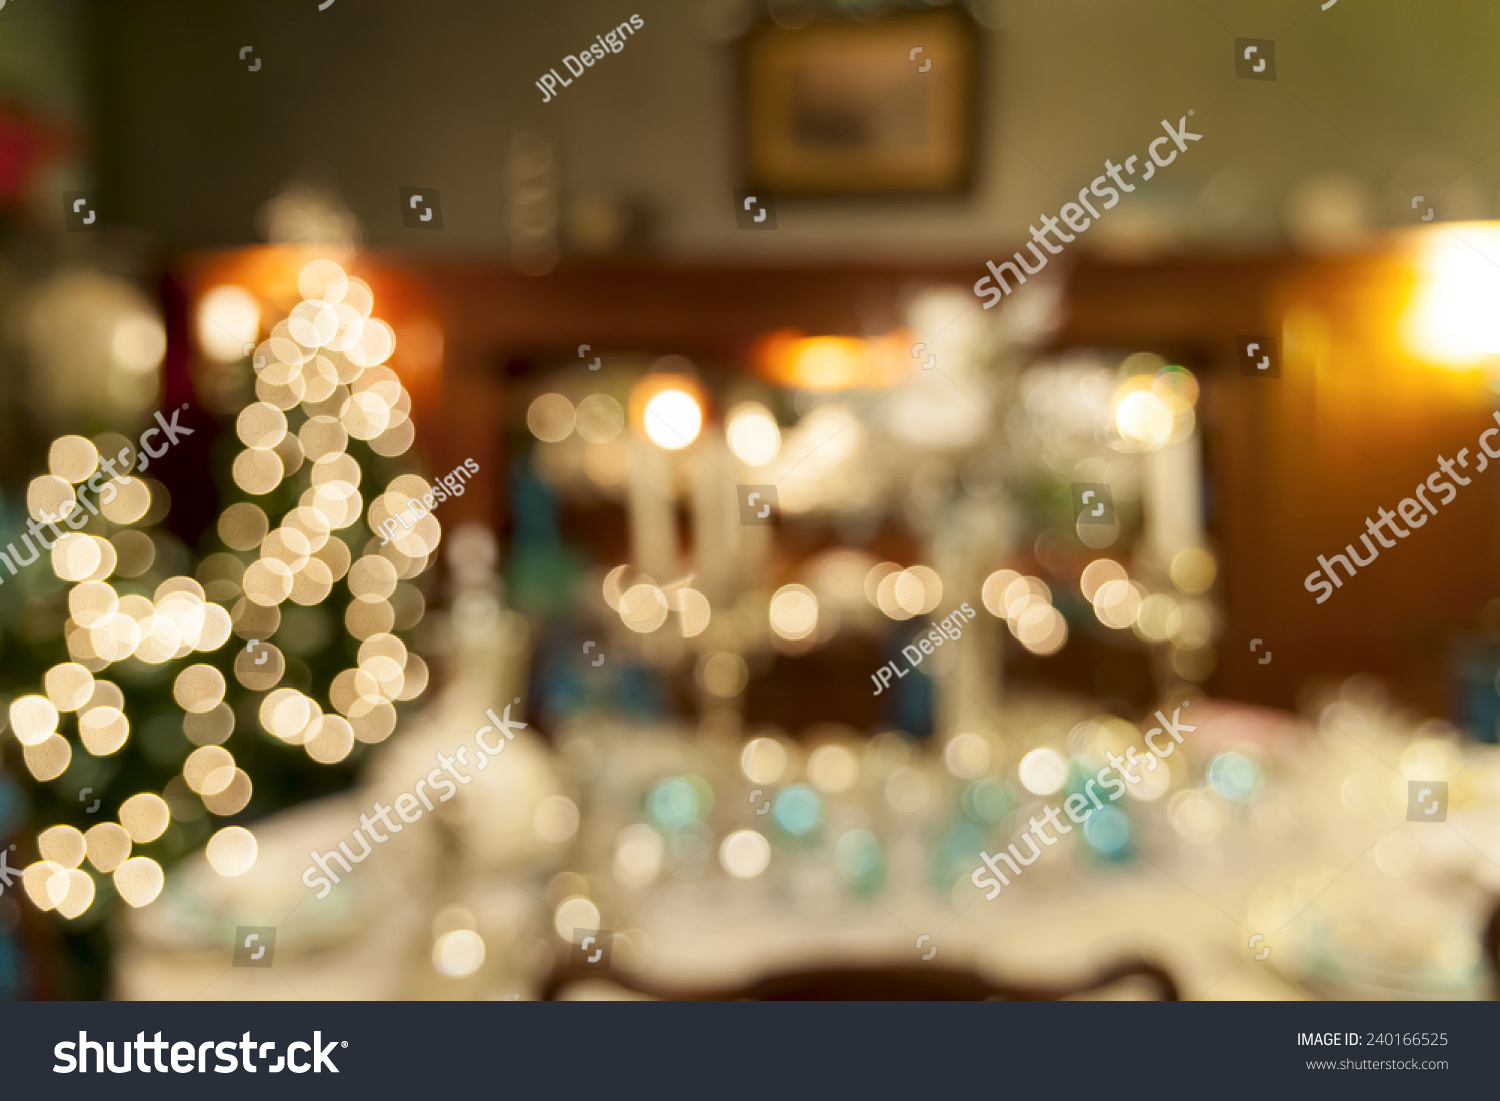 Christmas Day Holiday Celebration Dinner Table Stock Photo Edit Now 240166525